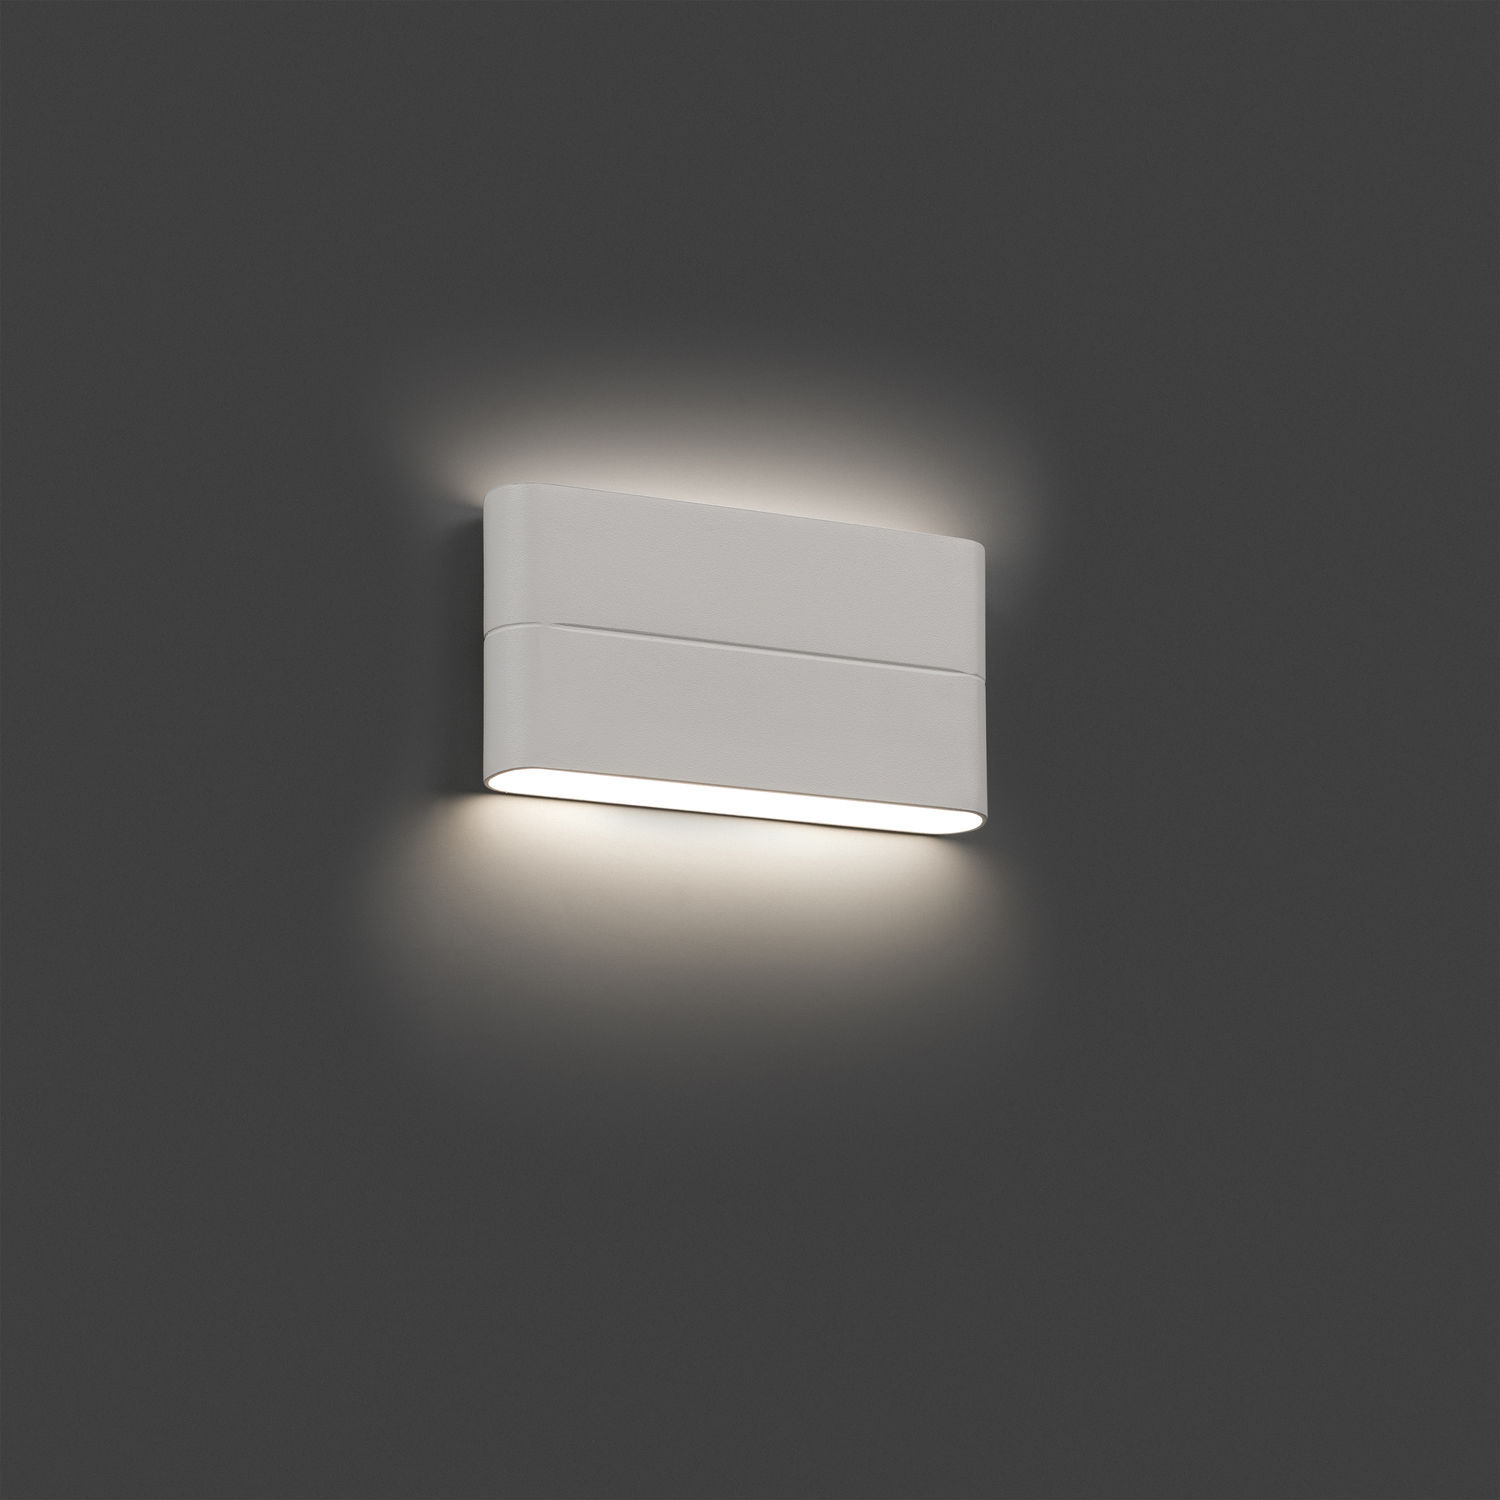 Applique murale d 39 ext rieur aday 2 led ip54 blanc l17 for Applique murale exterieur galvanise